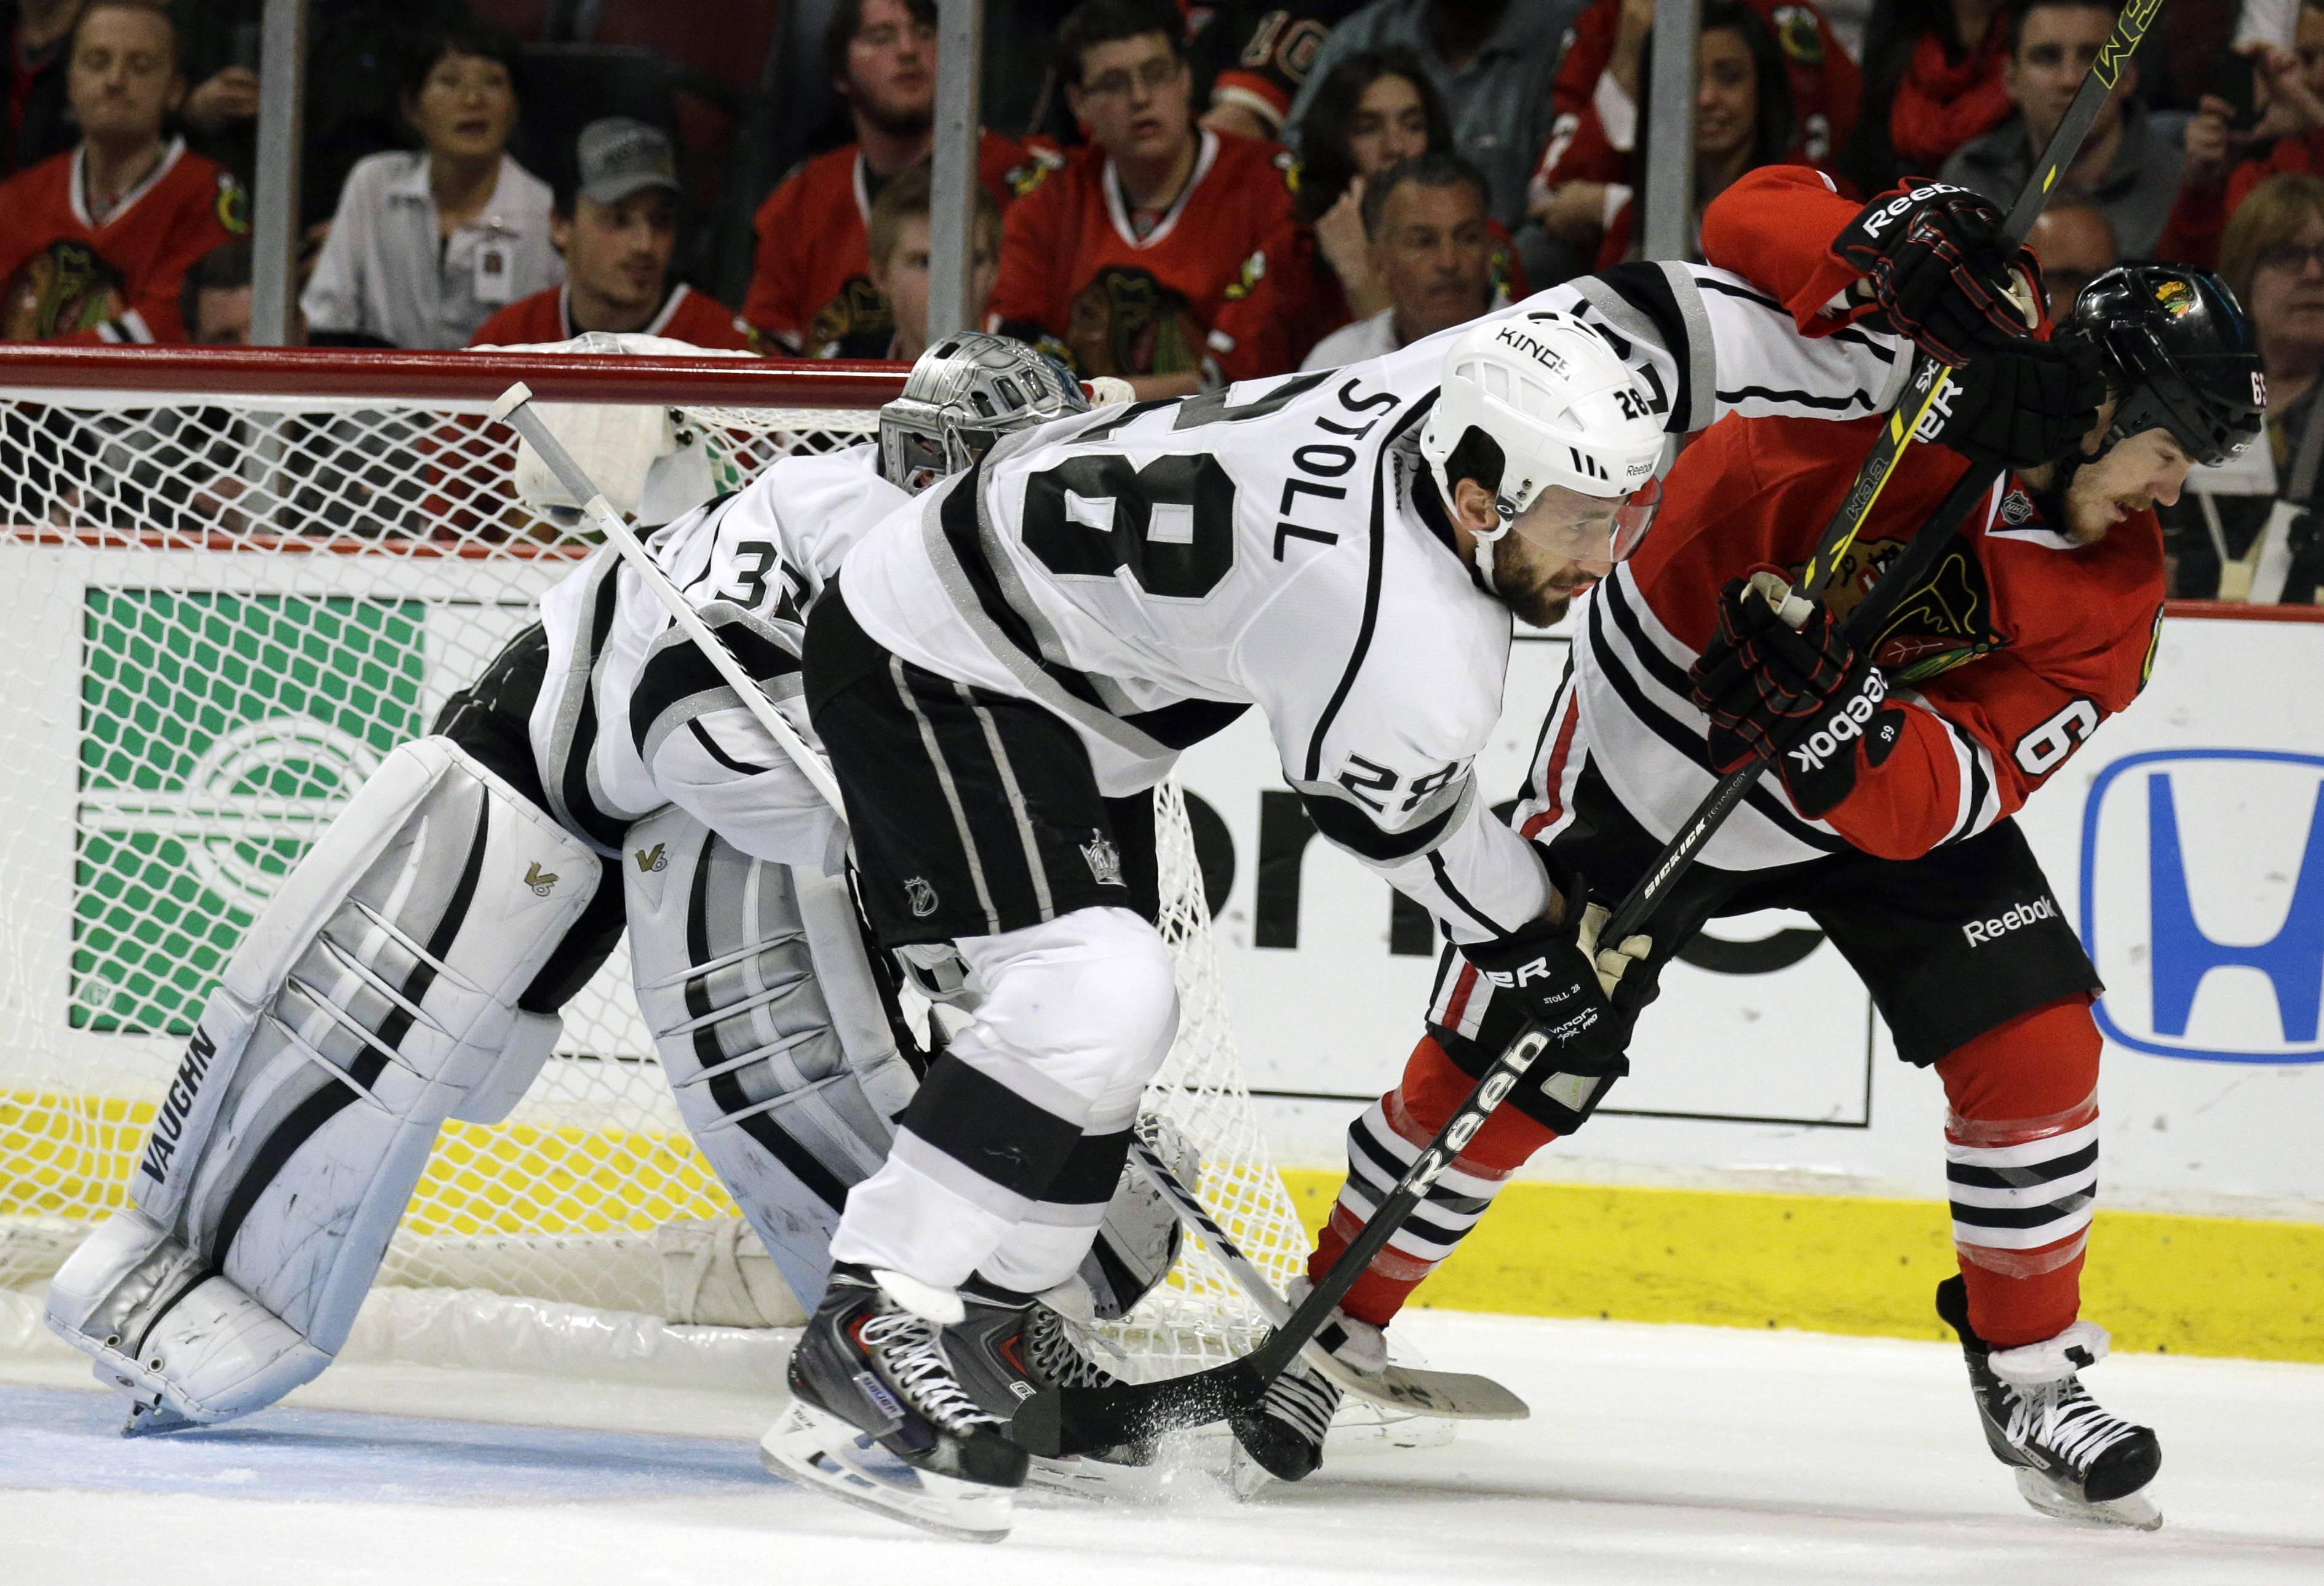 Los Angeles Kings center Jarret Stoll (28) and Chicago Blackhawks center Andrew Shaw (65) battle for a position as they wait for the puck during the second period.